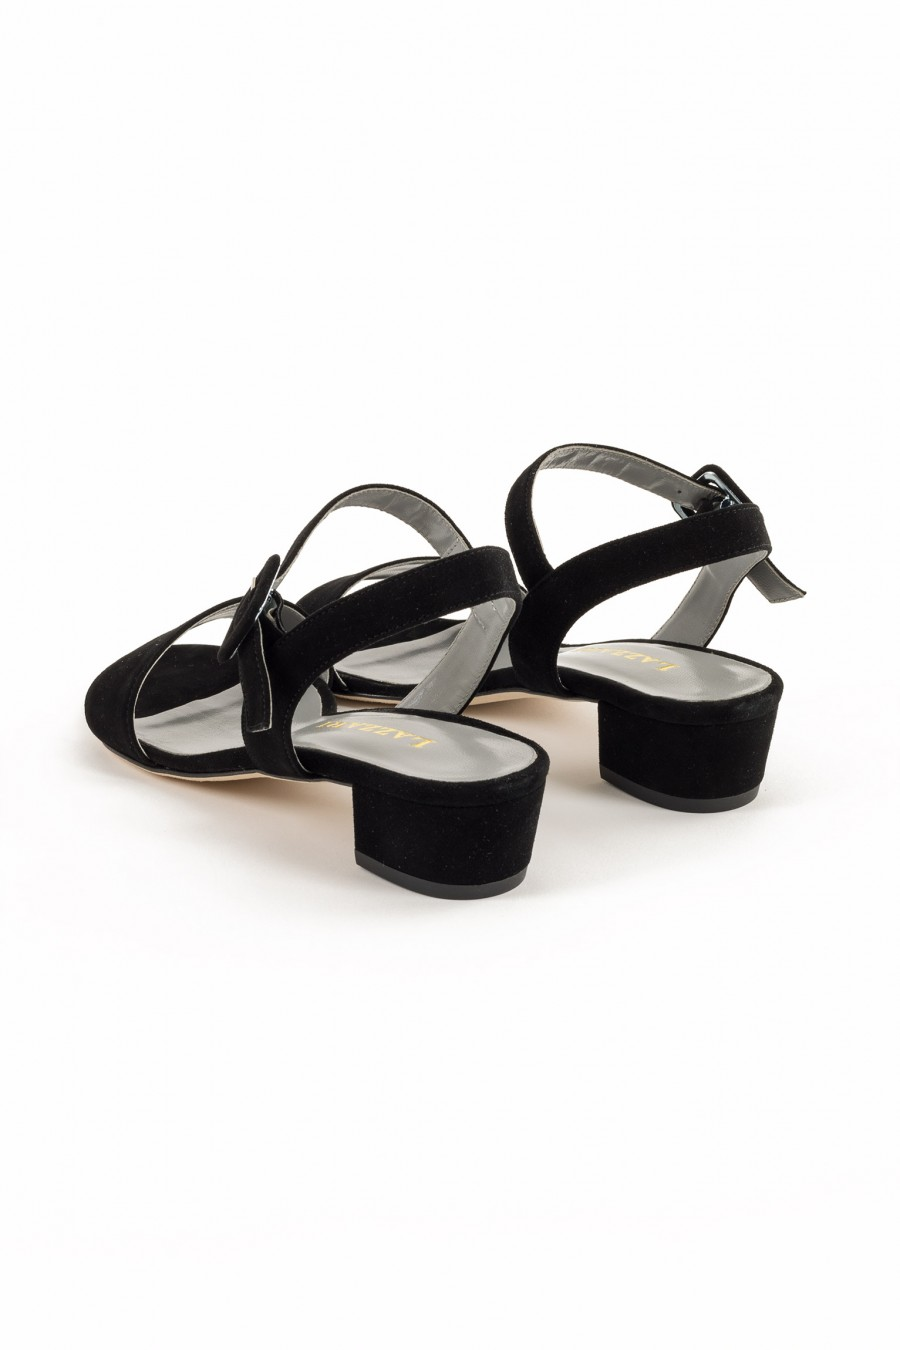 Black sandal with low heel